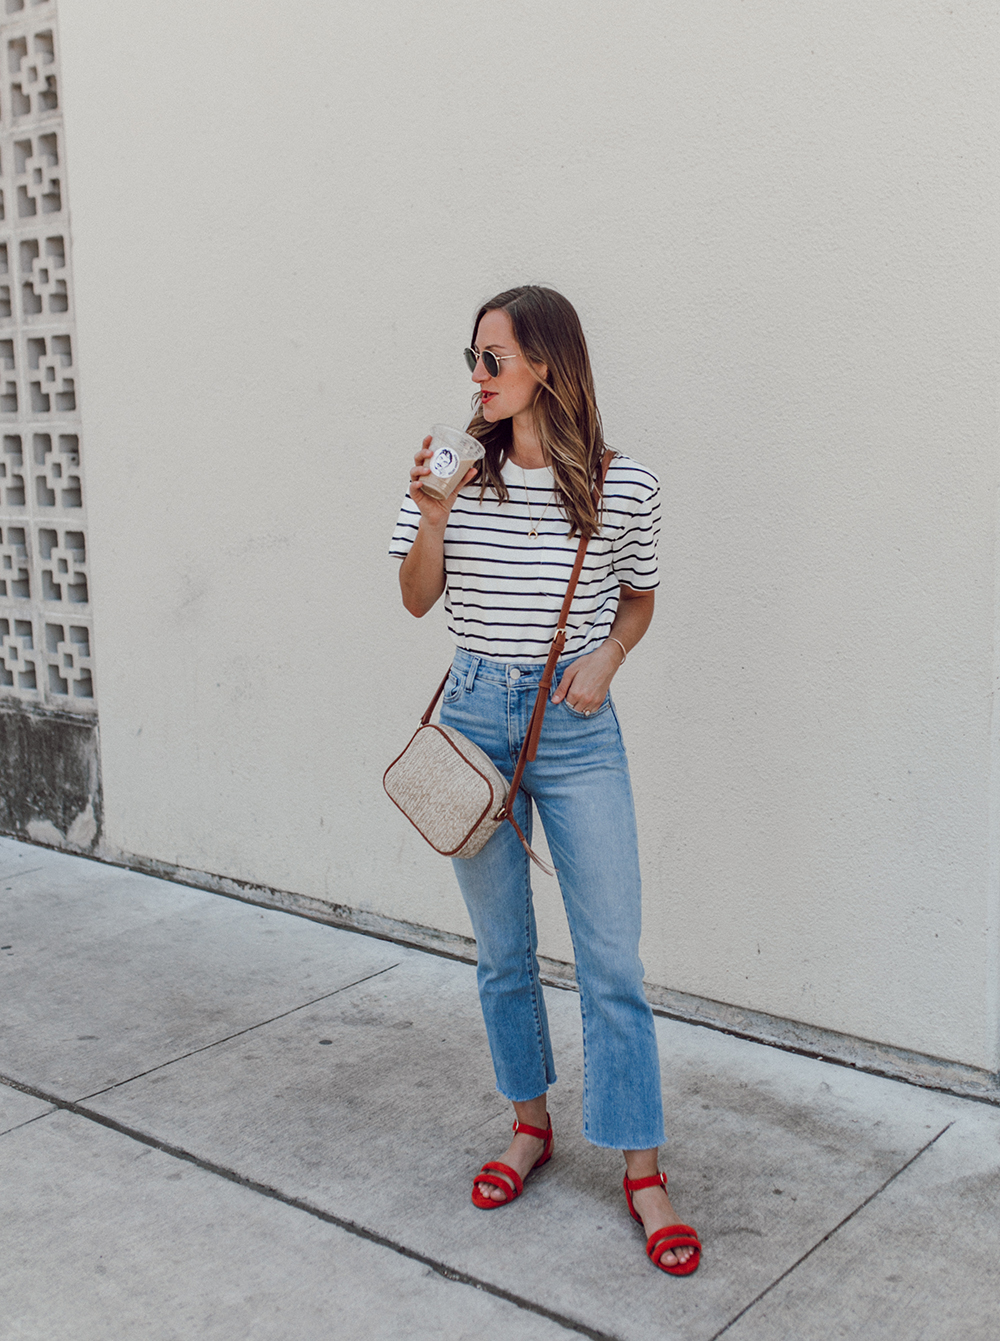 livvyland-blog-olivia-watson-sole-society-red-sandal-flats-spring-summer-outfit-idea-style-austin-texas-fashion-blogger-striped-shirt-4